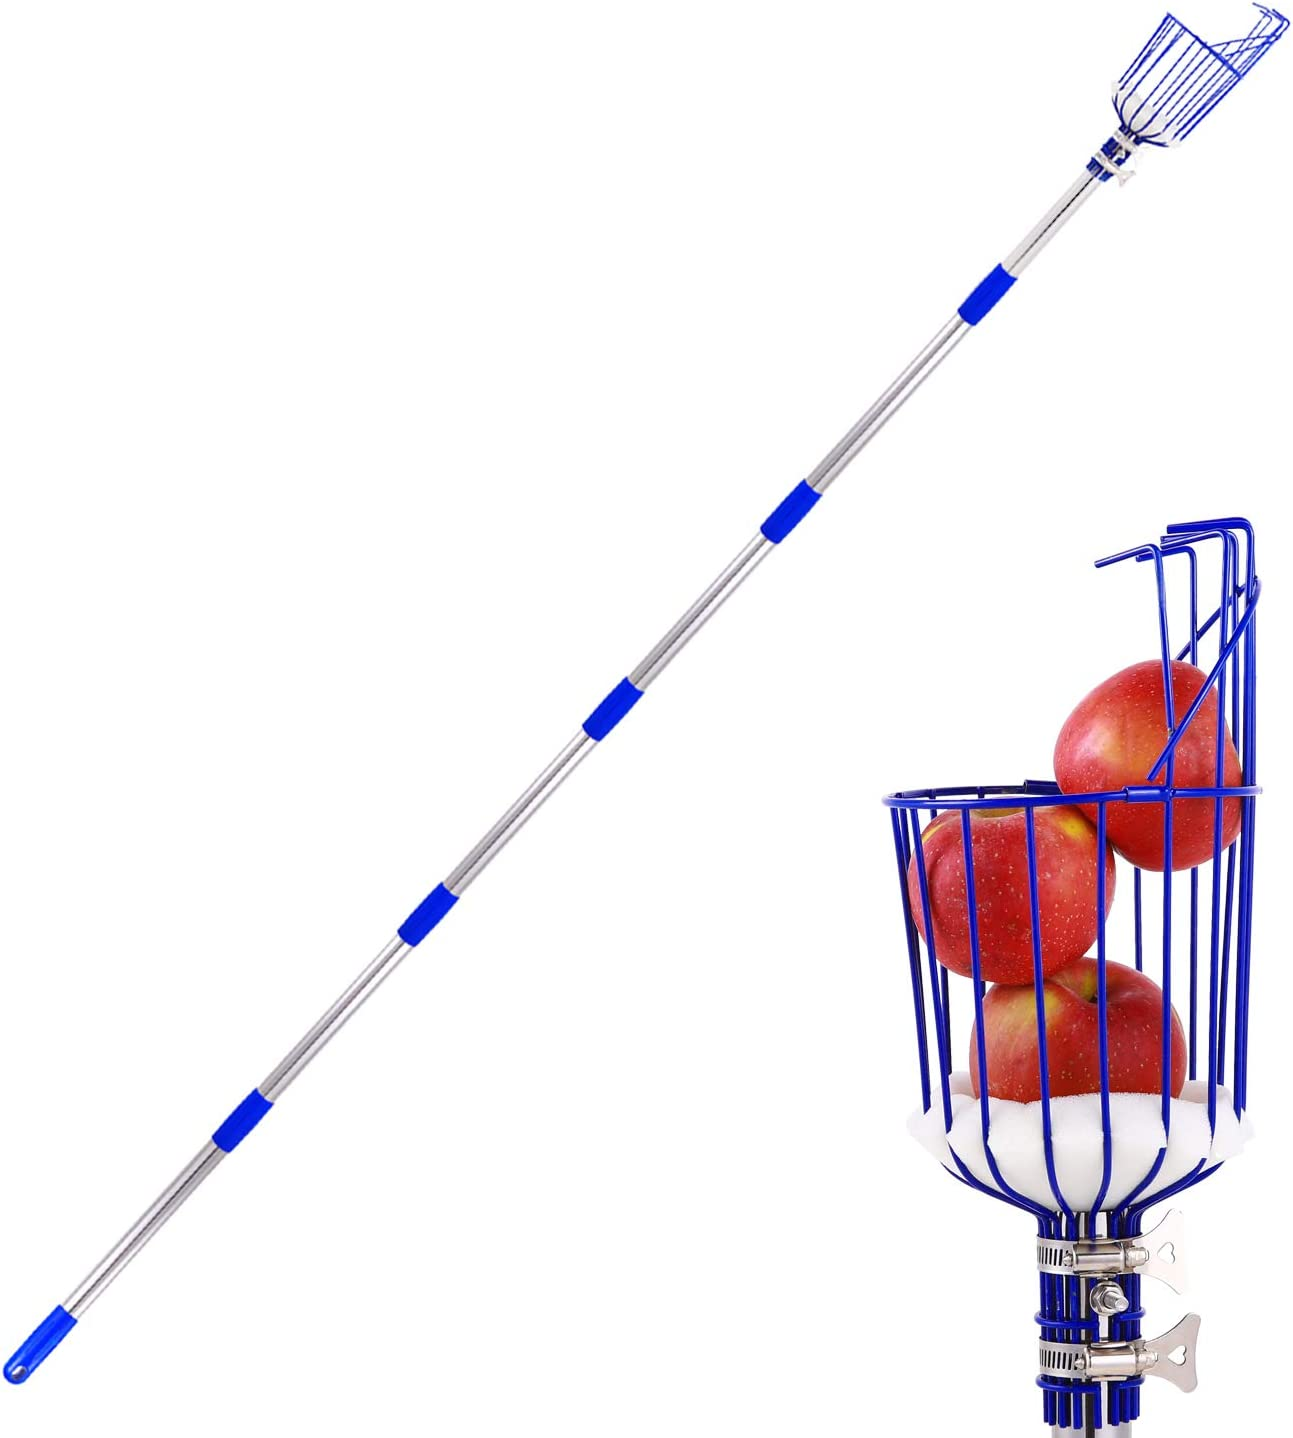 Ohuhu Fruit Picker, 8 ft Height Adjustable Fruit Picker Tool with Big Basket, Light-Weight Stainless Steel Pole to Pick Apple, Orange, Pear, Mango Picker for Garden Patio,8 FT